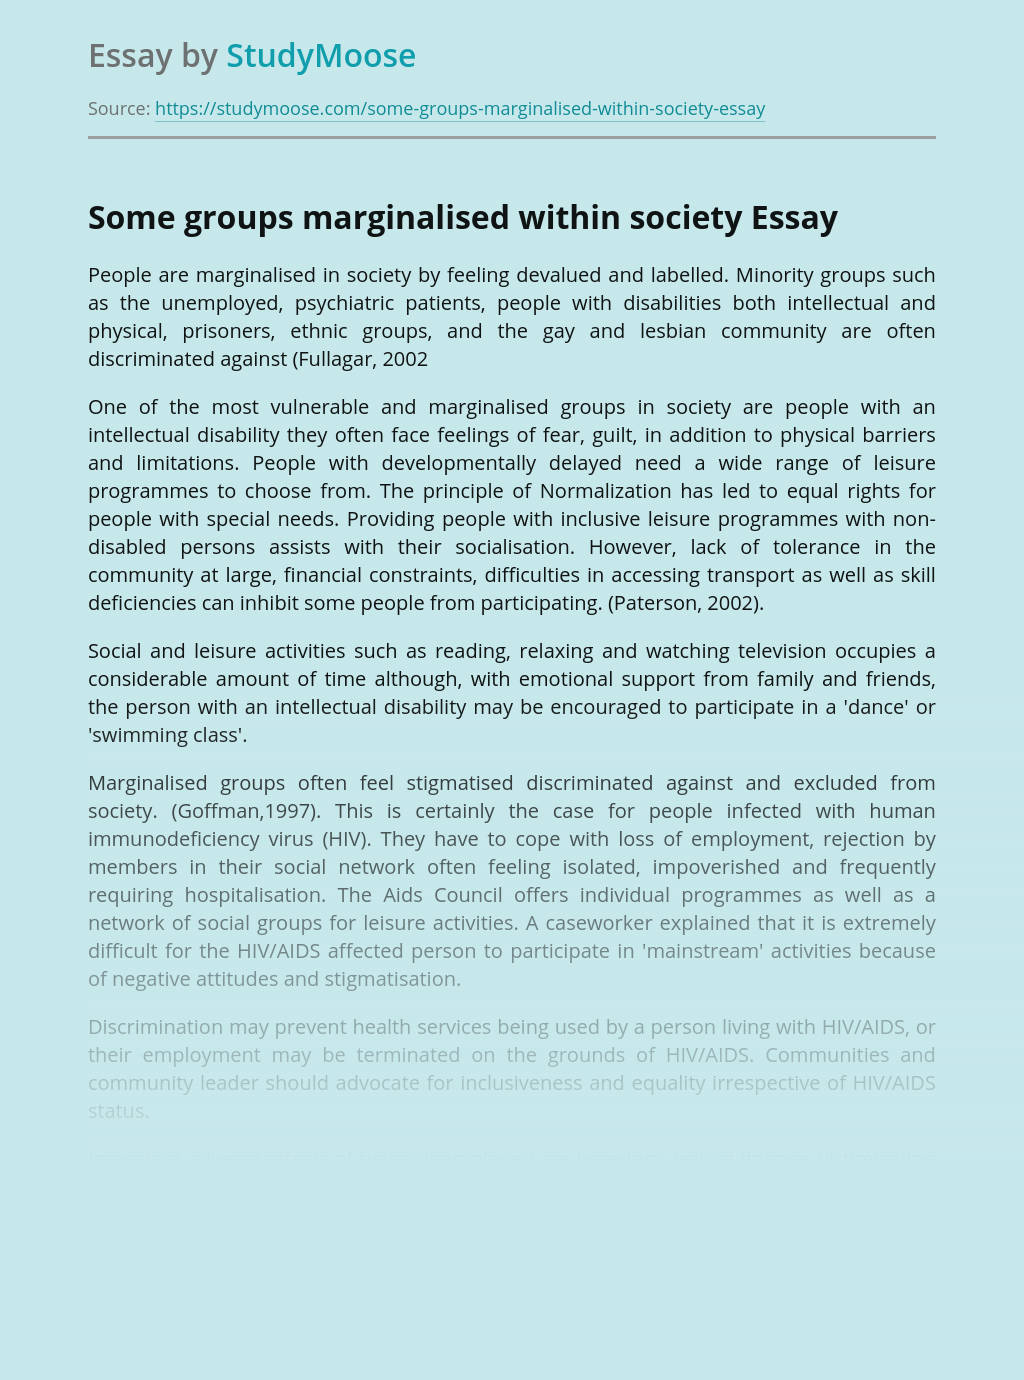 Some groups marginalised within society